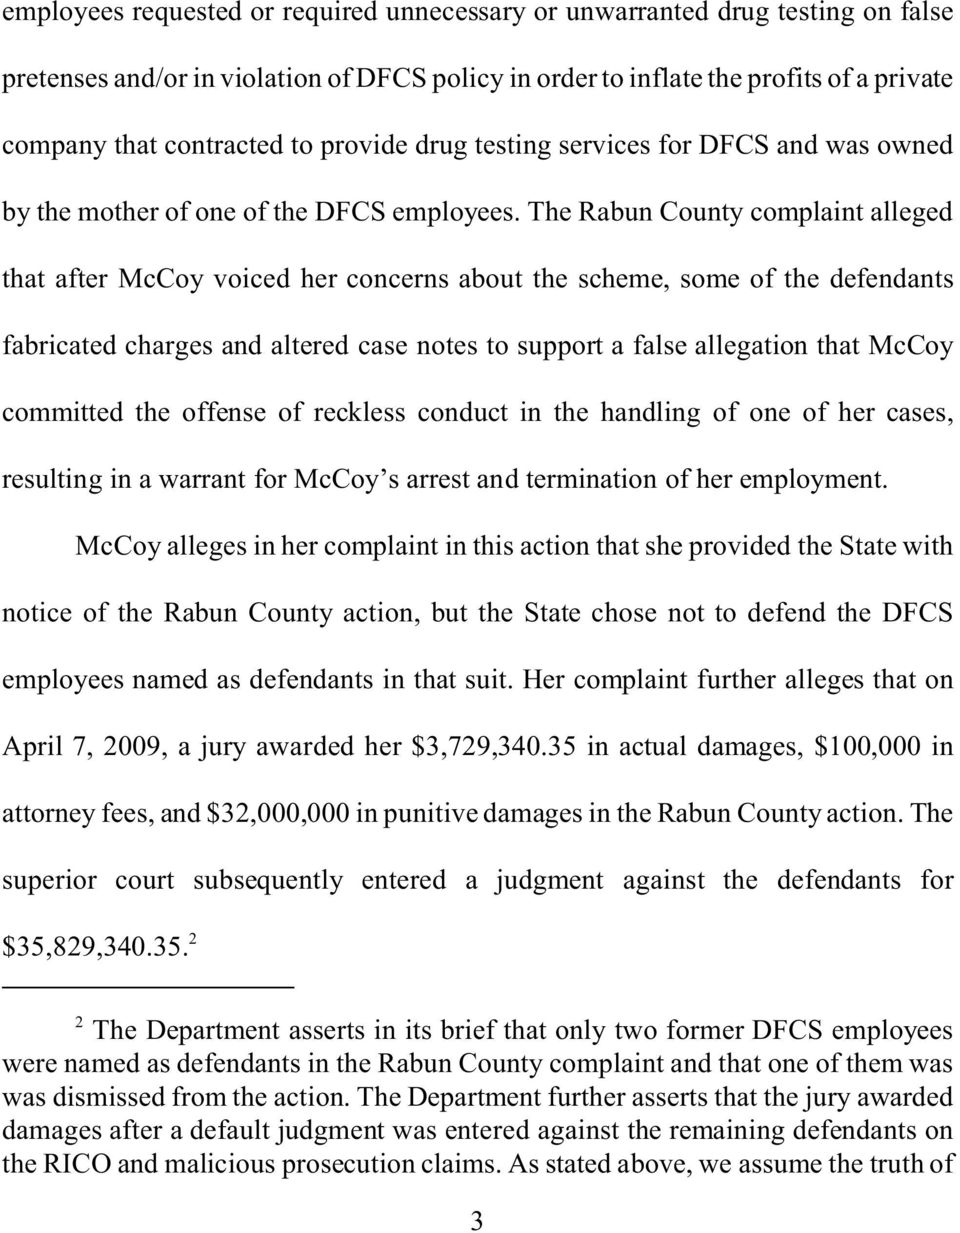 The Rabun County complaint alleged that after McCoy voiced her concerns about the scheme, some of the defendants fabricated charges and altered case notes to support a false allegation that McCoy